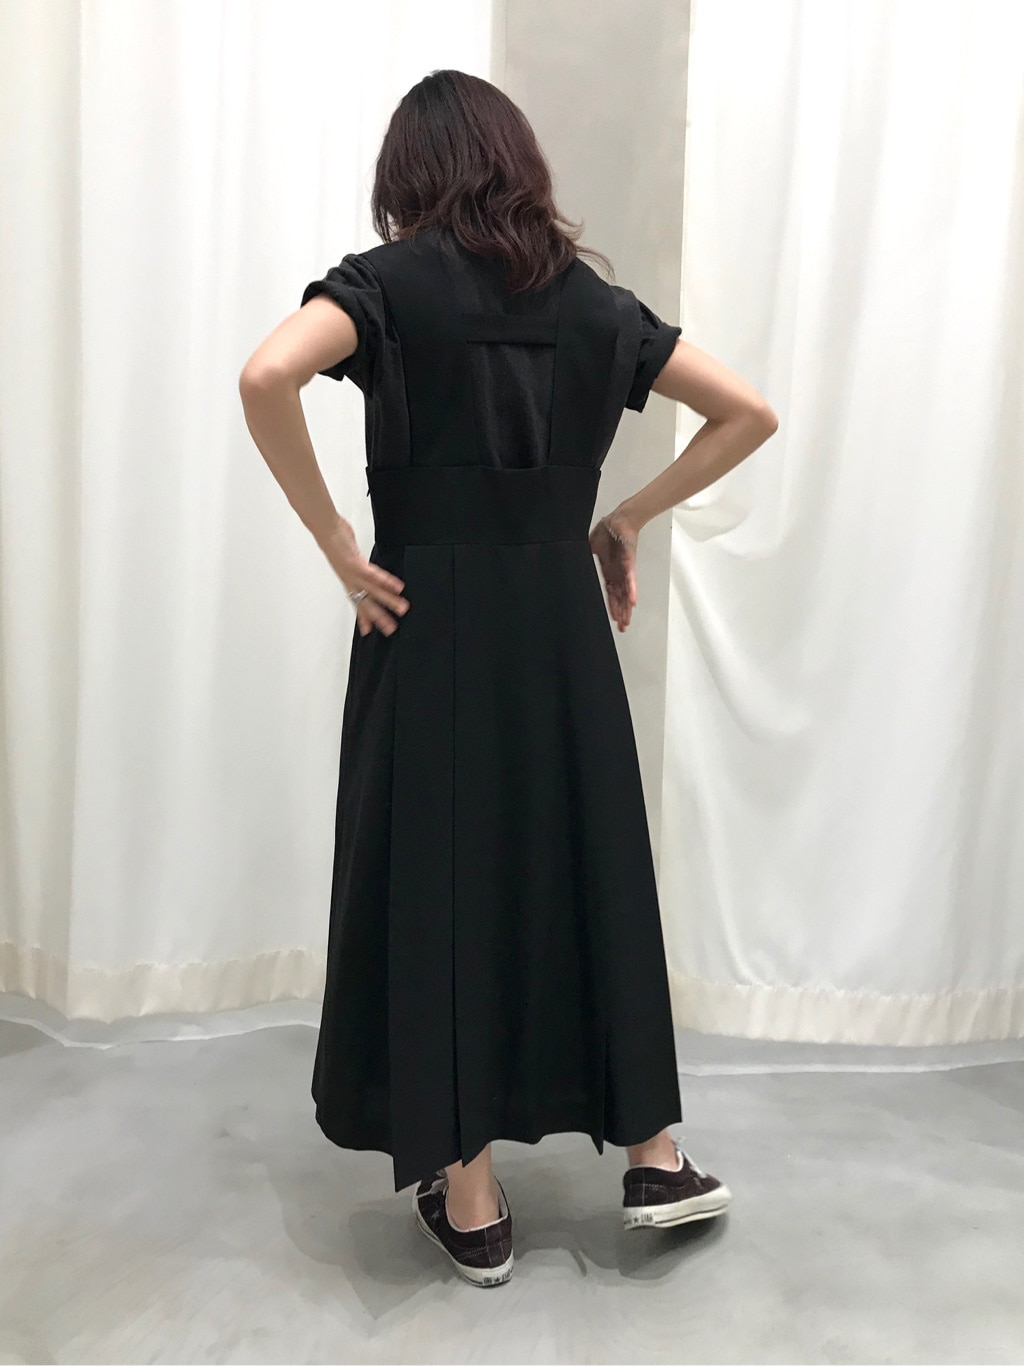 AMB SHOP PAR ICI CHILD WOMAN,PAR ICI ルミネ横浜 身長:154cm 2020.05.30